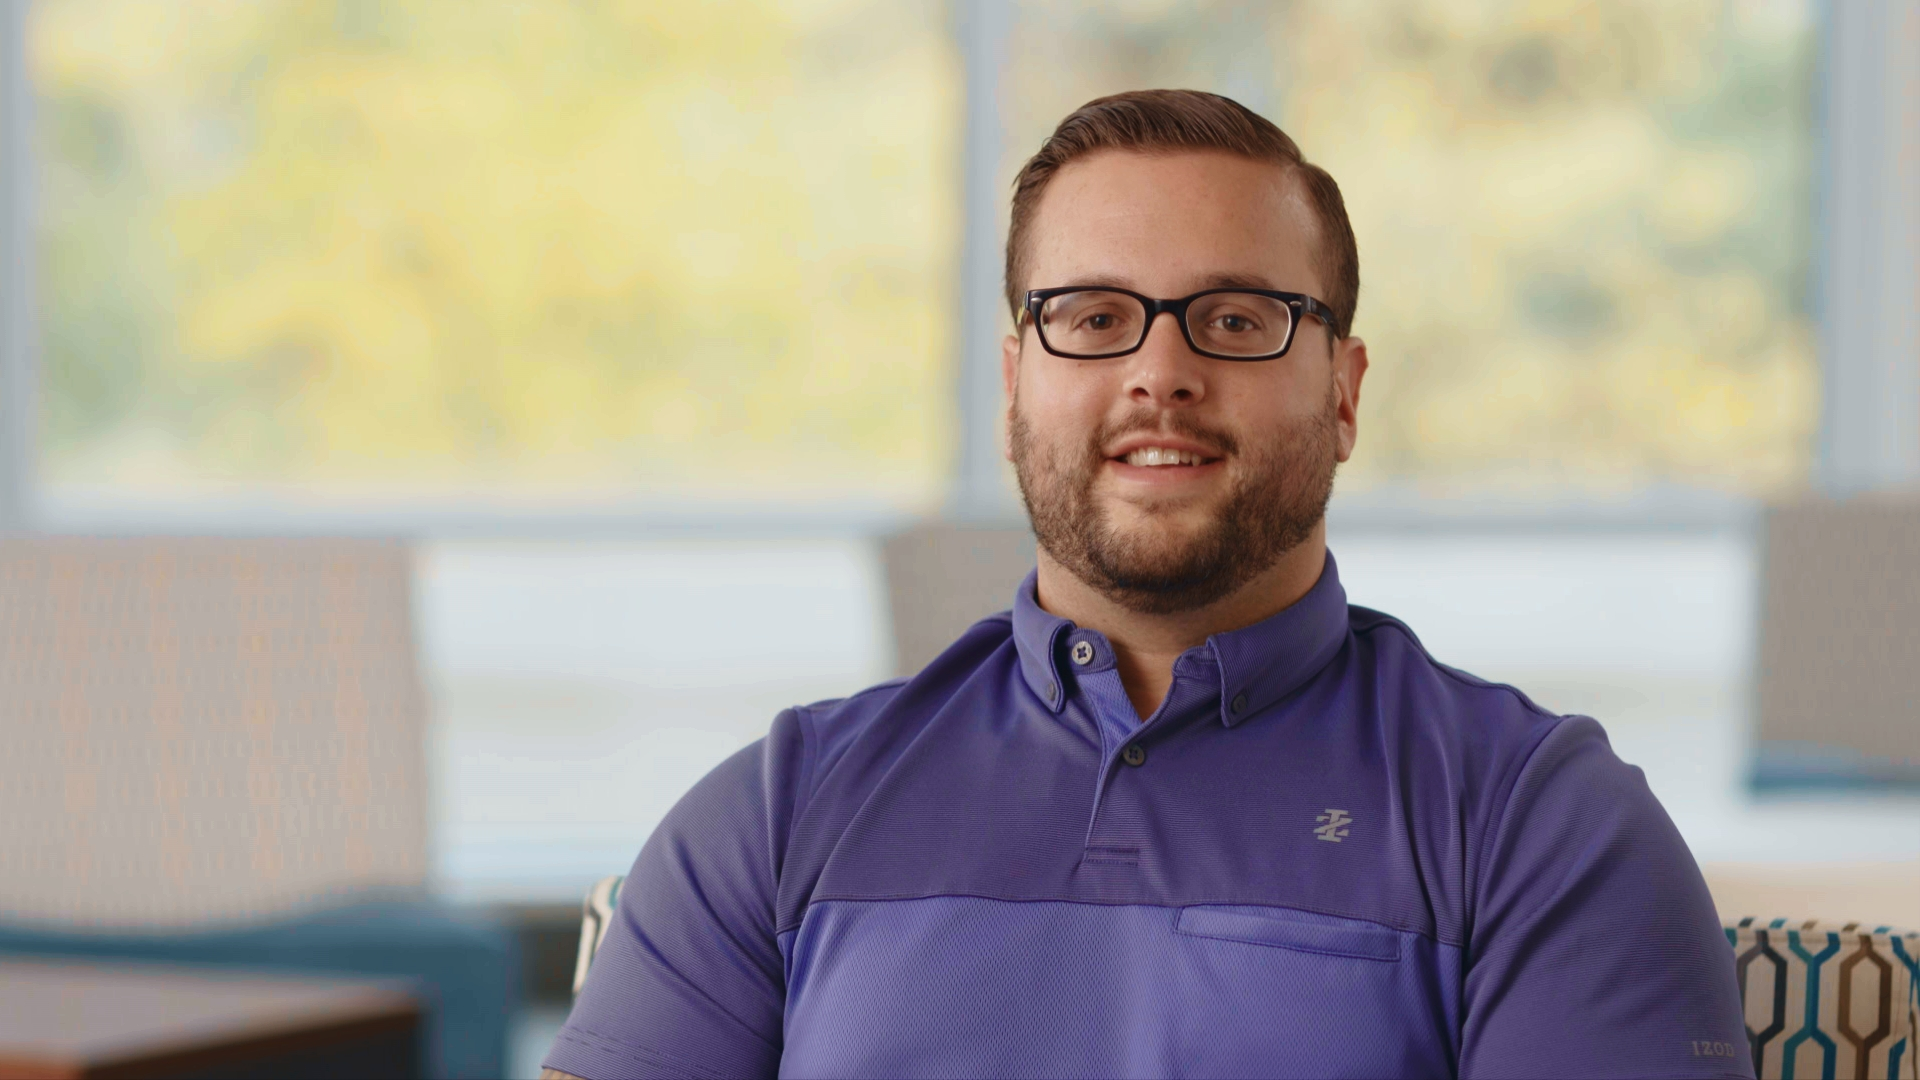 Matthew- Working at Liberty Mutual